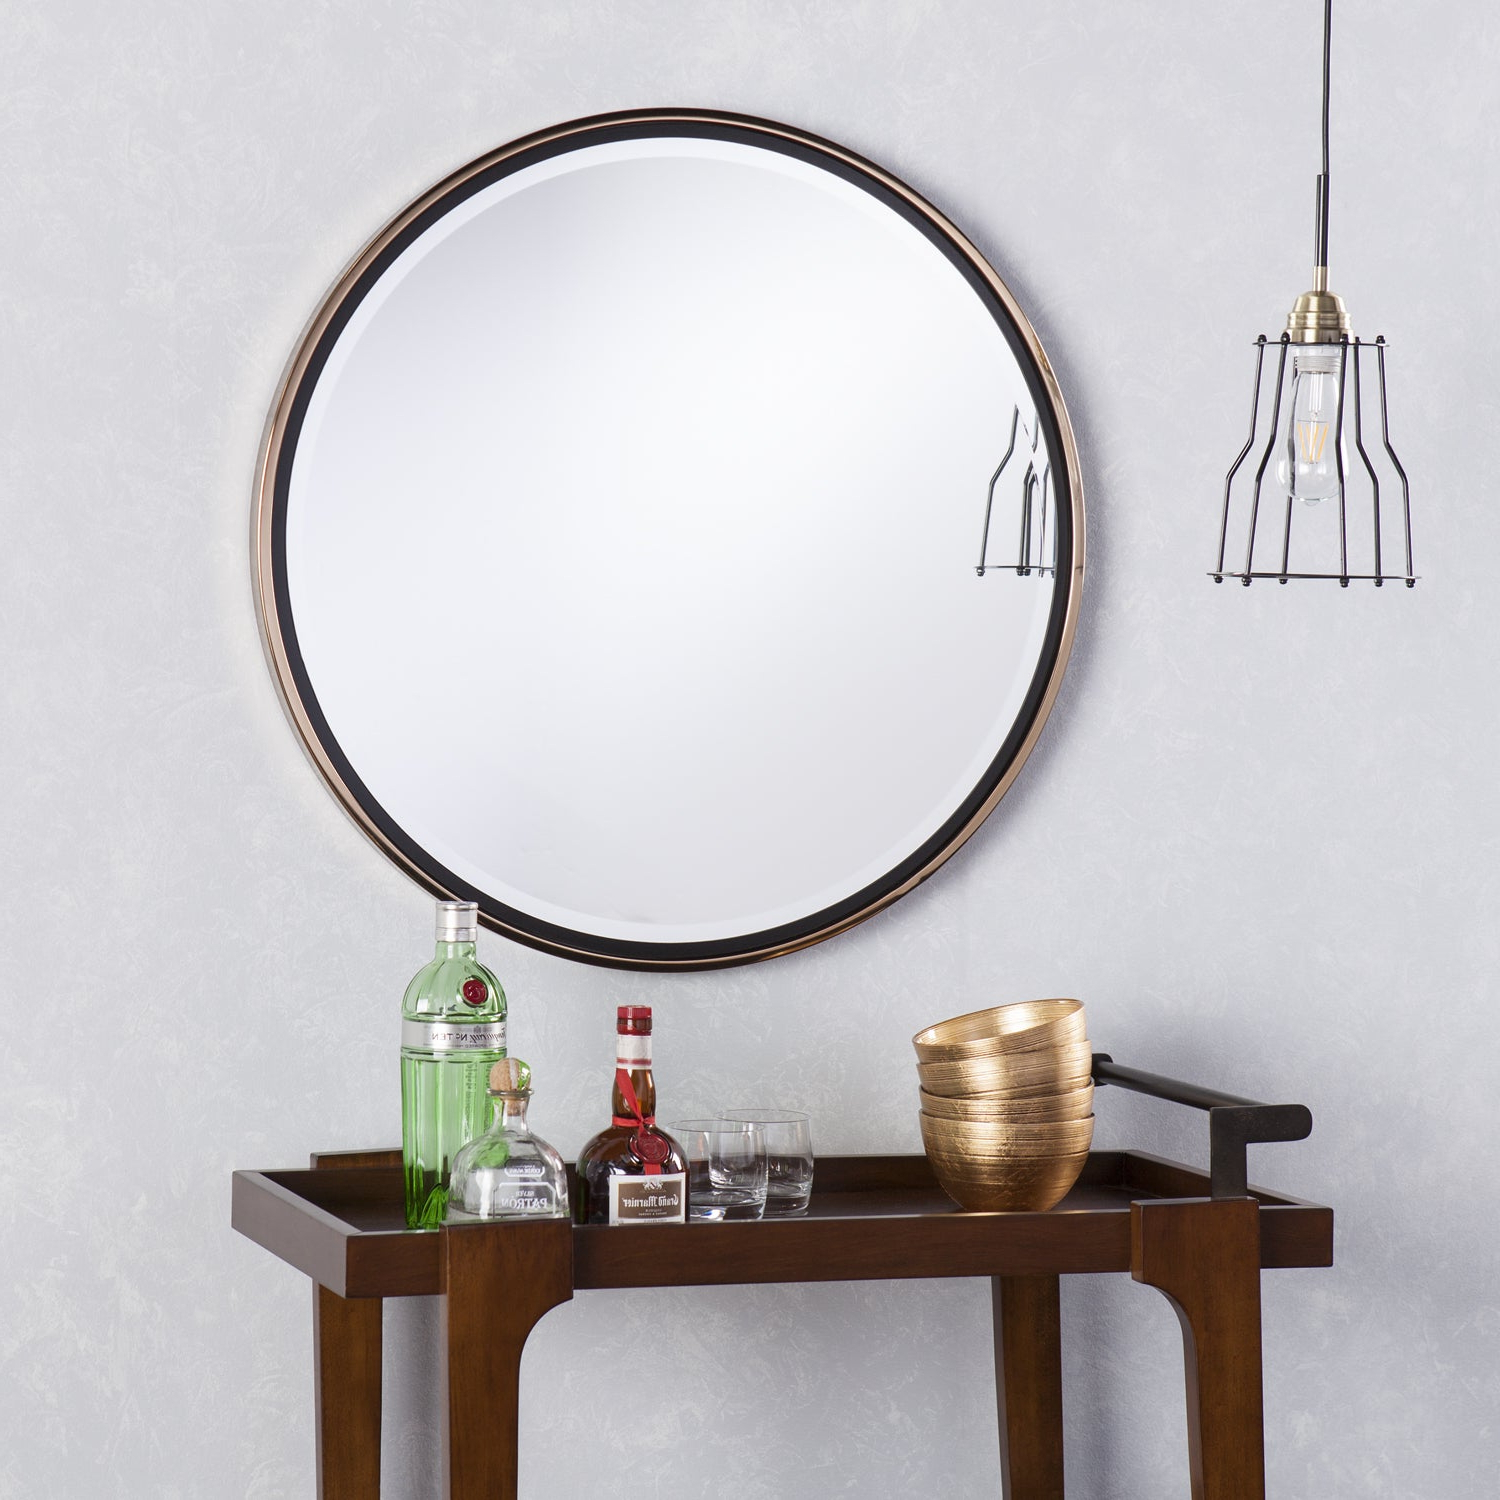 Round Wall Mirrors For Well Known Holly & Martin Wais Round Wall Mirror – Champagne Gold (View 15 of 20)